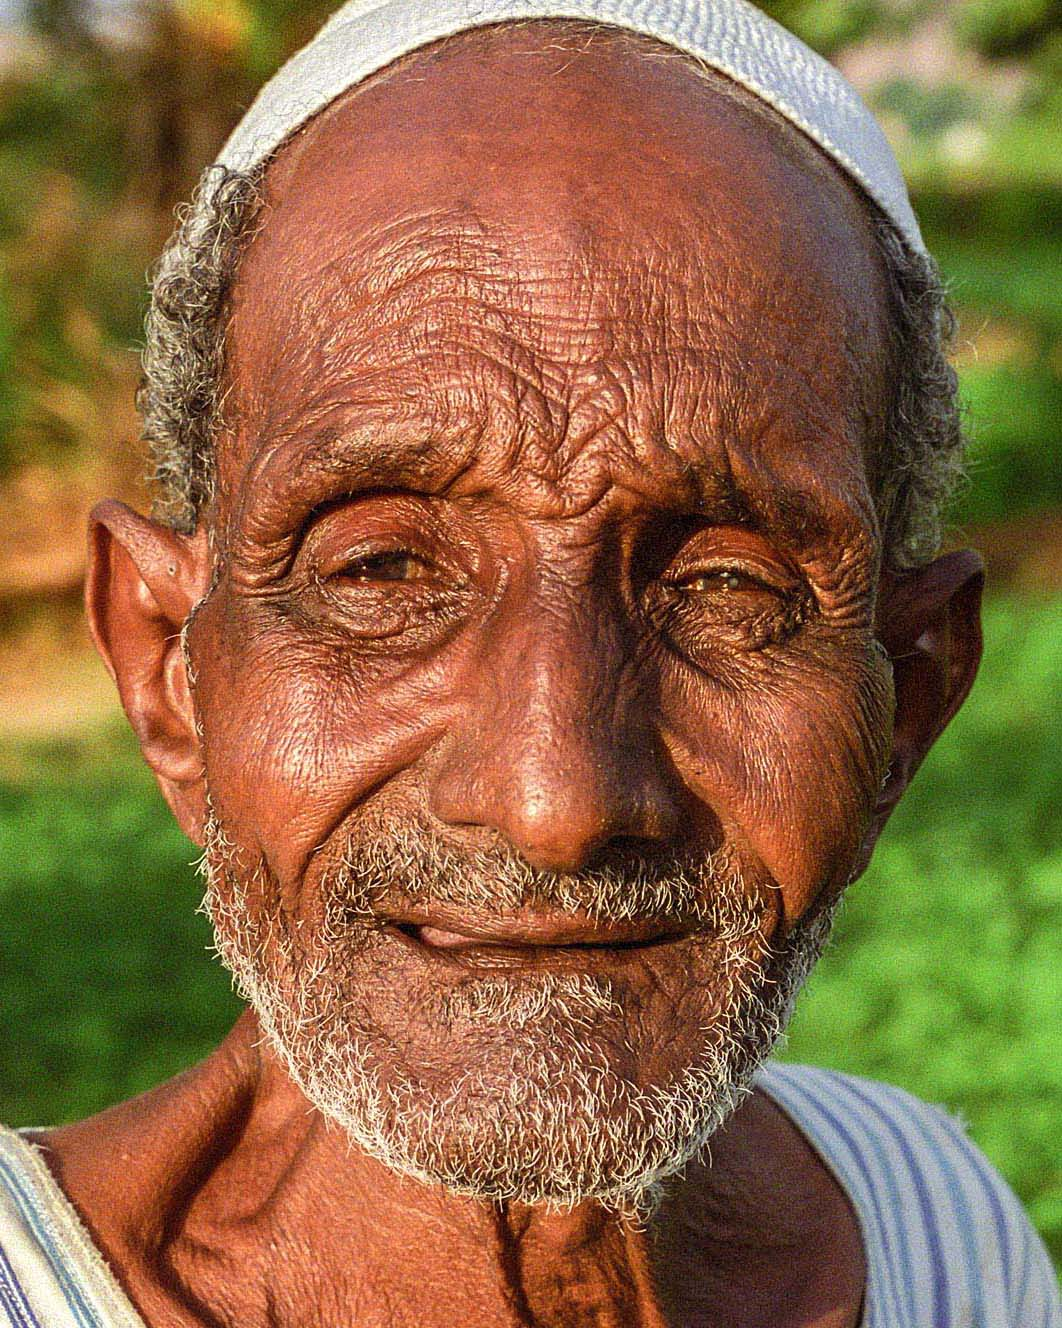 Elderly Nubian man Egypt